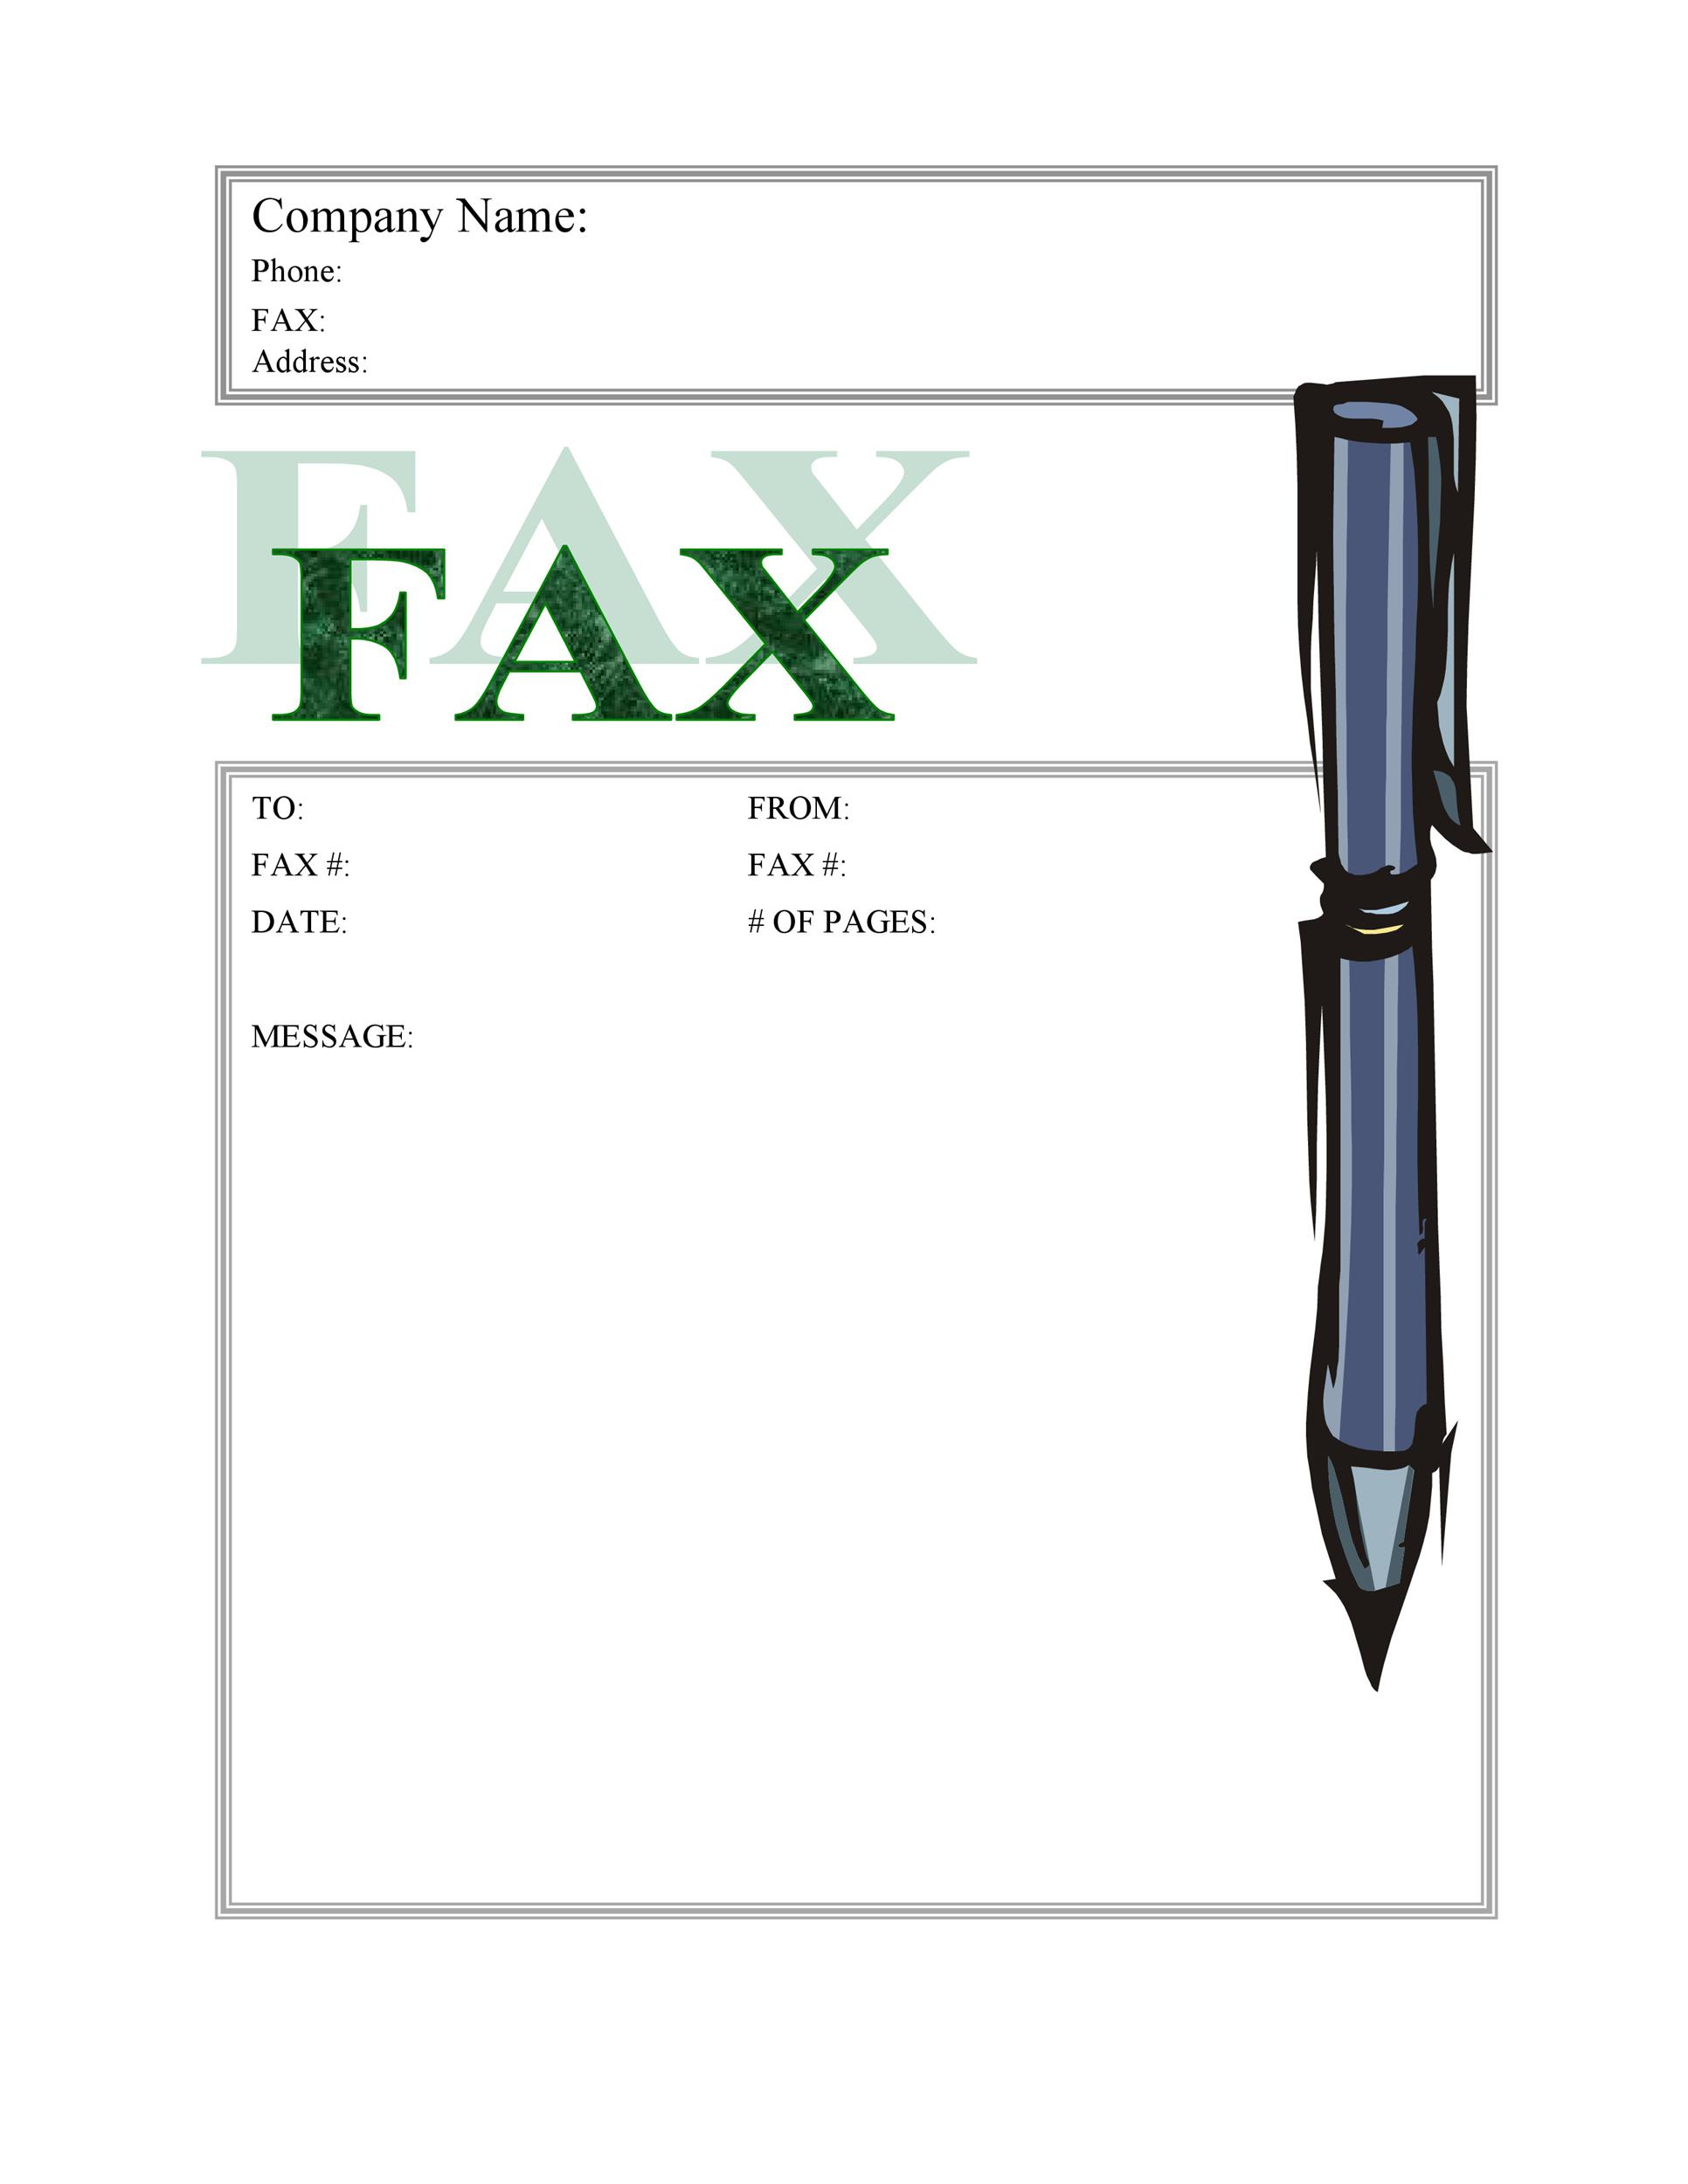 Printable Fax Cover Sheet Template 14  Example Fax Cover Sheet